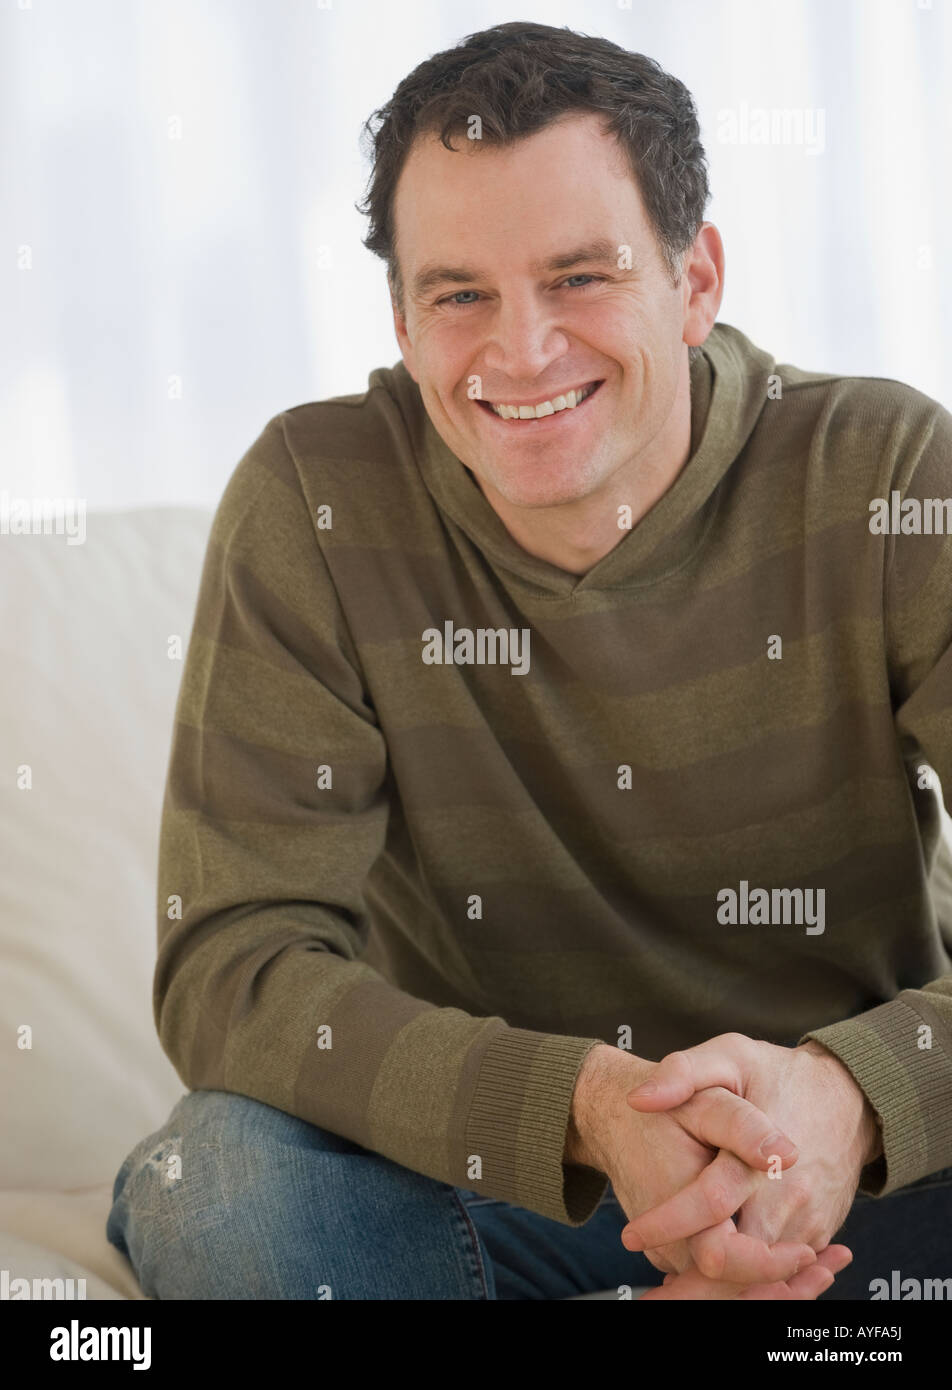 Man sitting with hands clasped - Stock Image